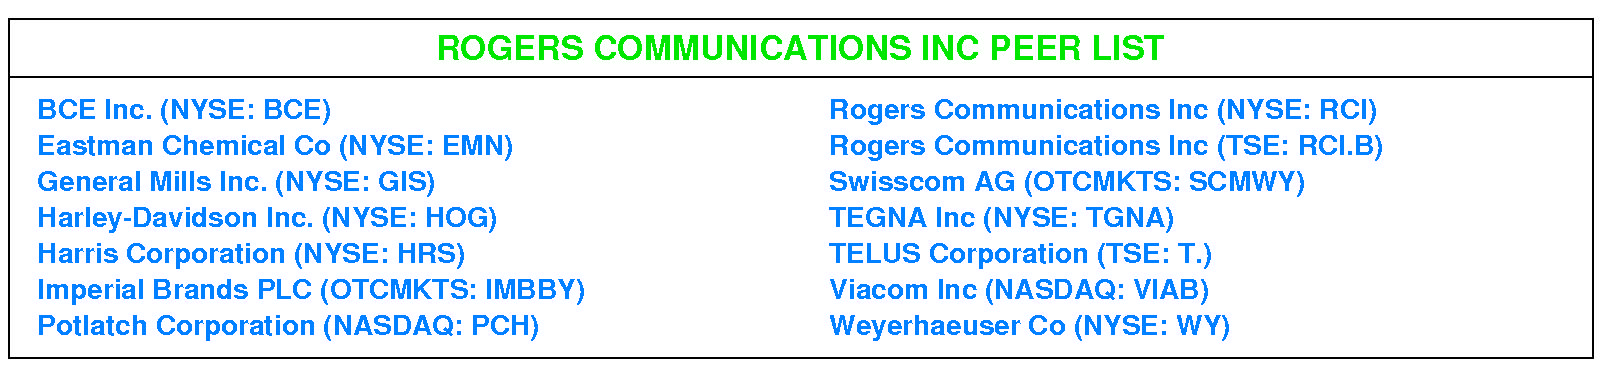 Rating Update: Stock Rating D-Negative (8/2/19)-Rogers